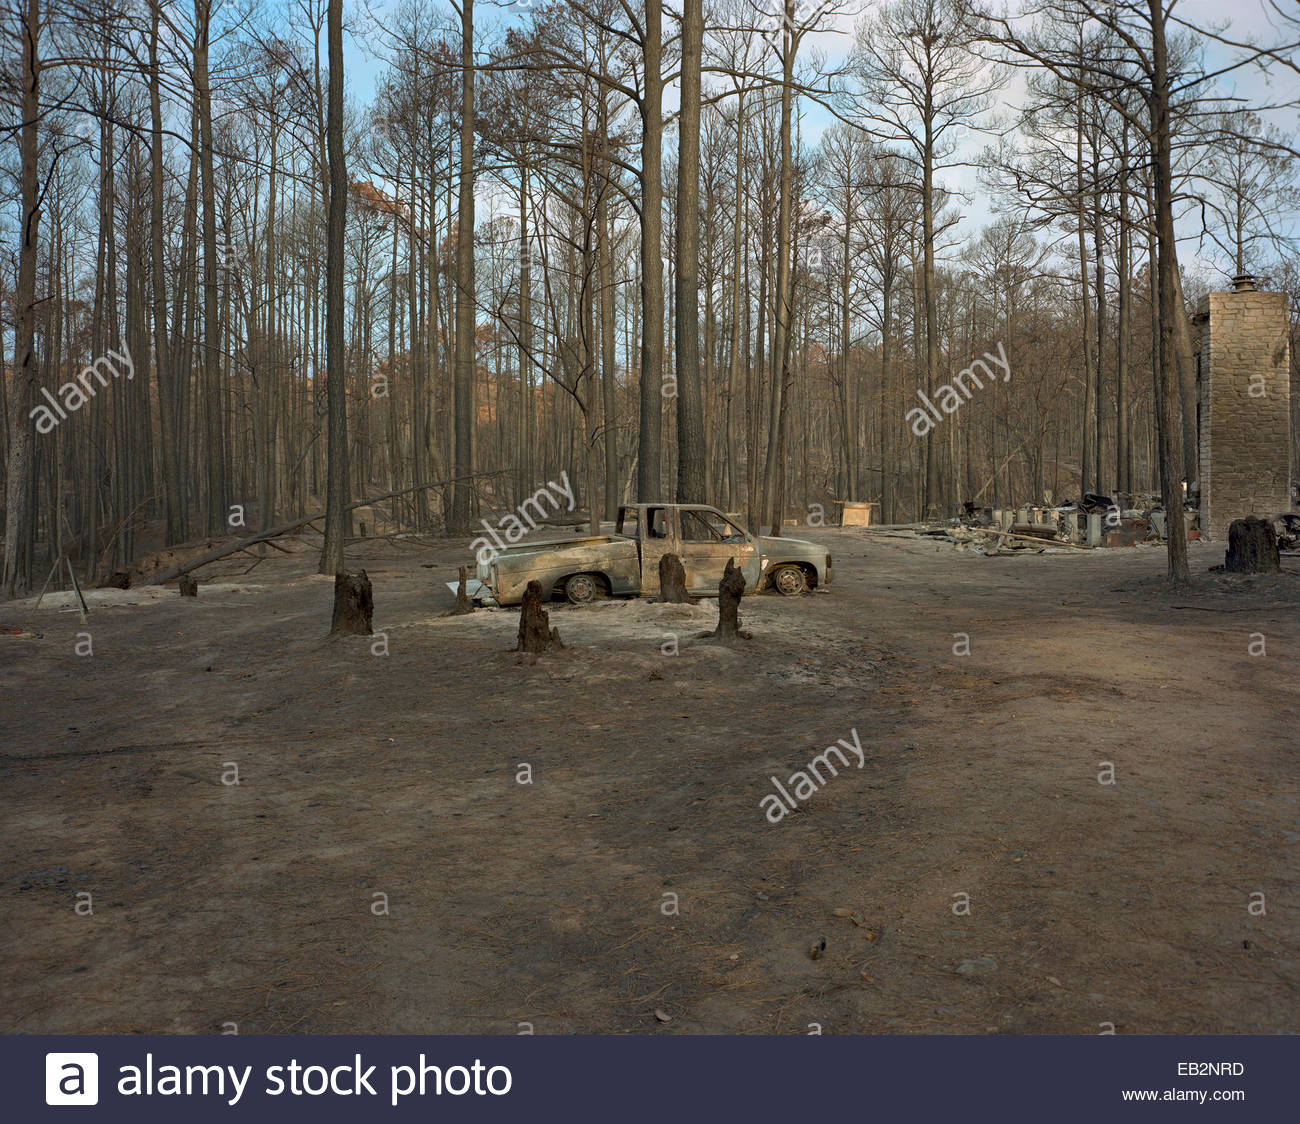 A burned out truck at a homesite that was completely destroyed in Bastrop, Texas fires. - Stock Image